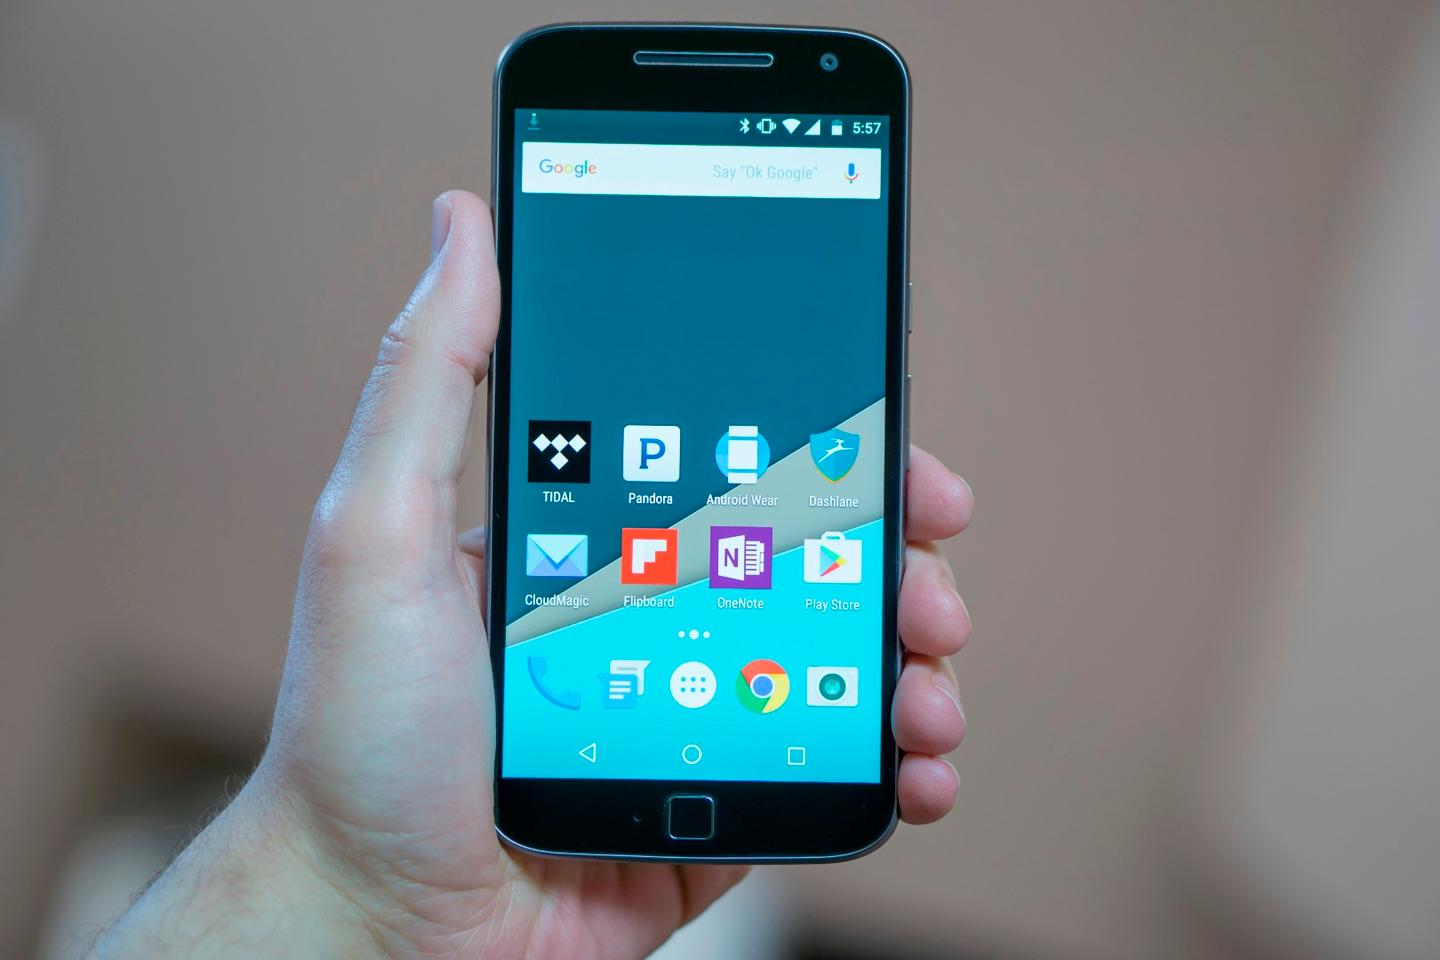 The Moto G4 and G4 Plus (pictured) have 5.5-inch, 1080p screens